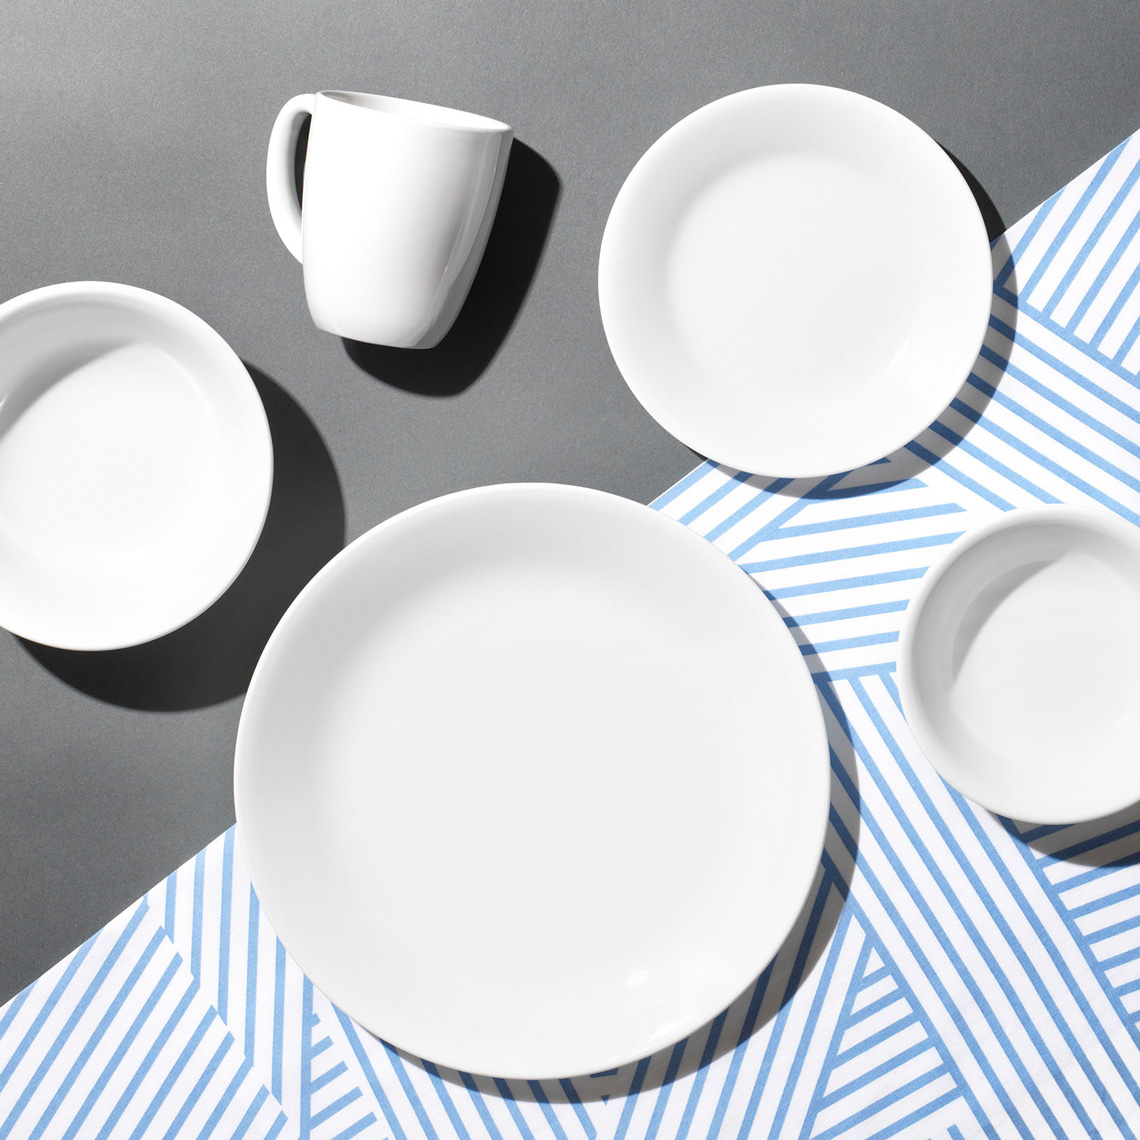 dinnerware on a graphic background